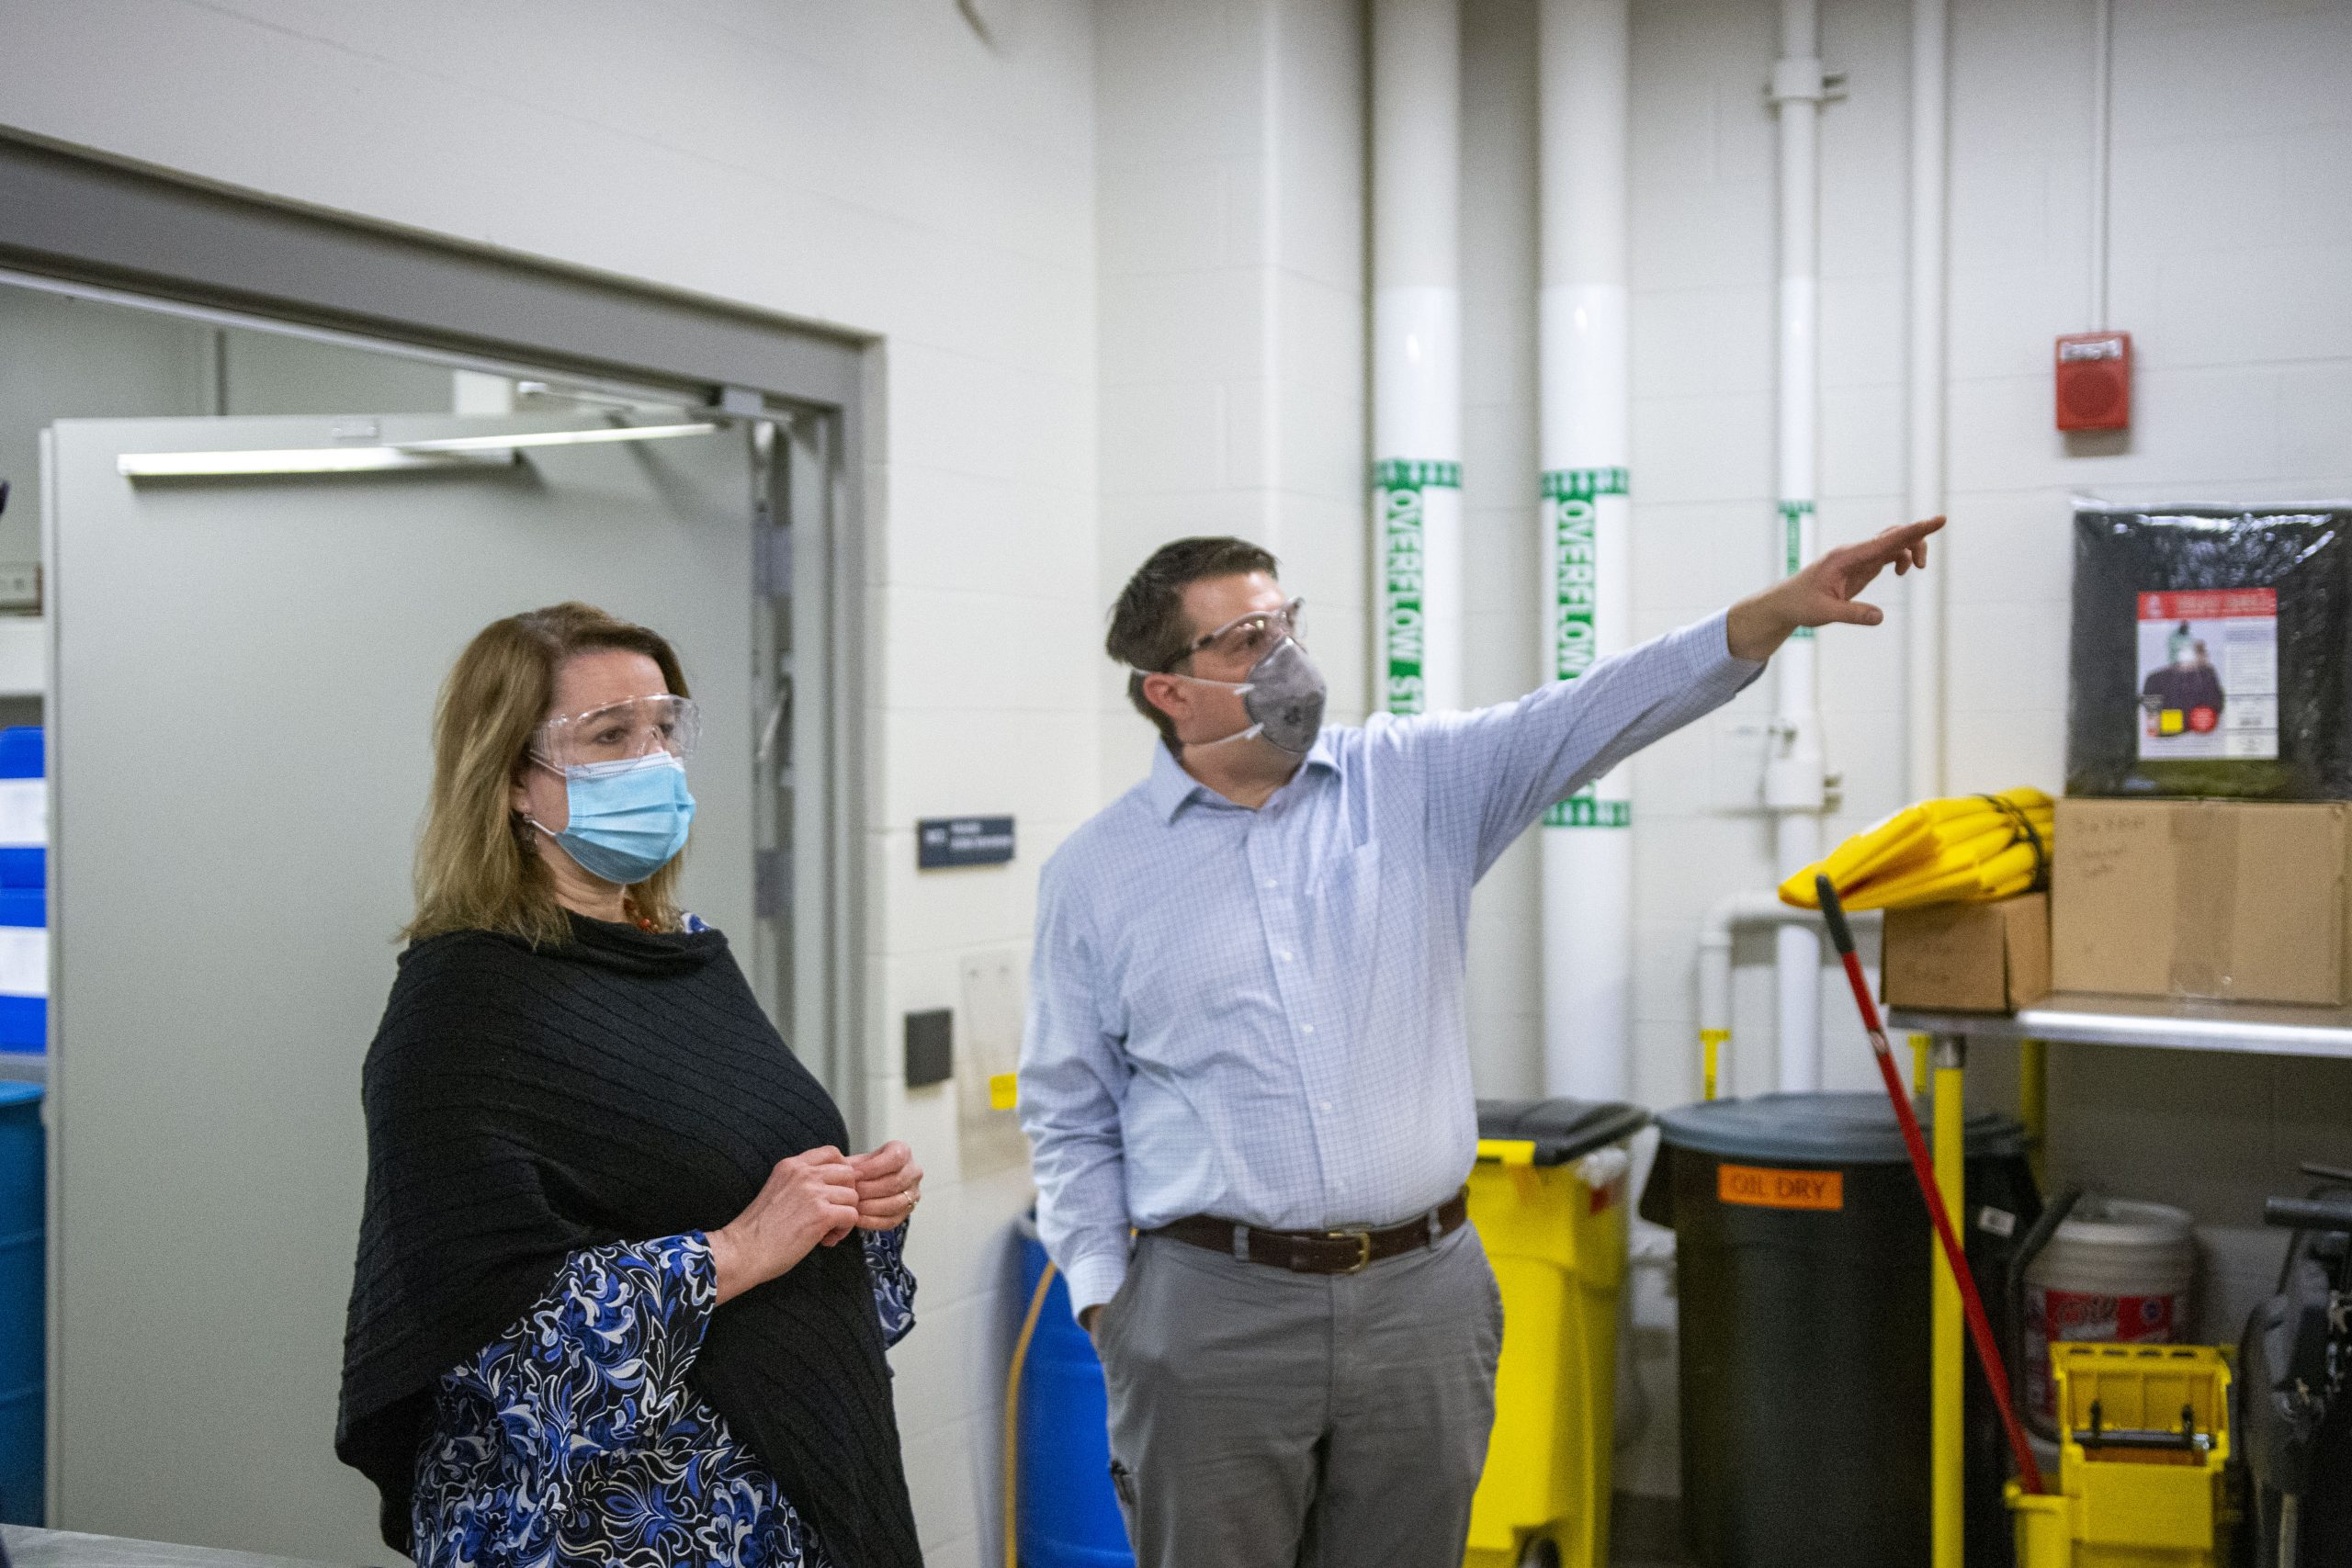 Susan Martinis, University of Illinois Urbana-Champaign Vice Chancellor for Research and Innovation, tours IBRL with Brian Jacobson, Assistant Director of Food & Bioprocessing Pilot Plant Operations.